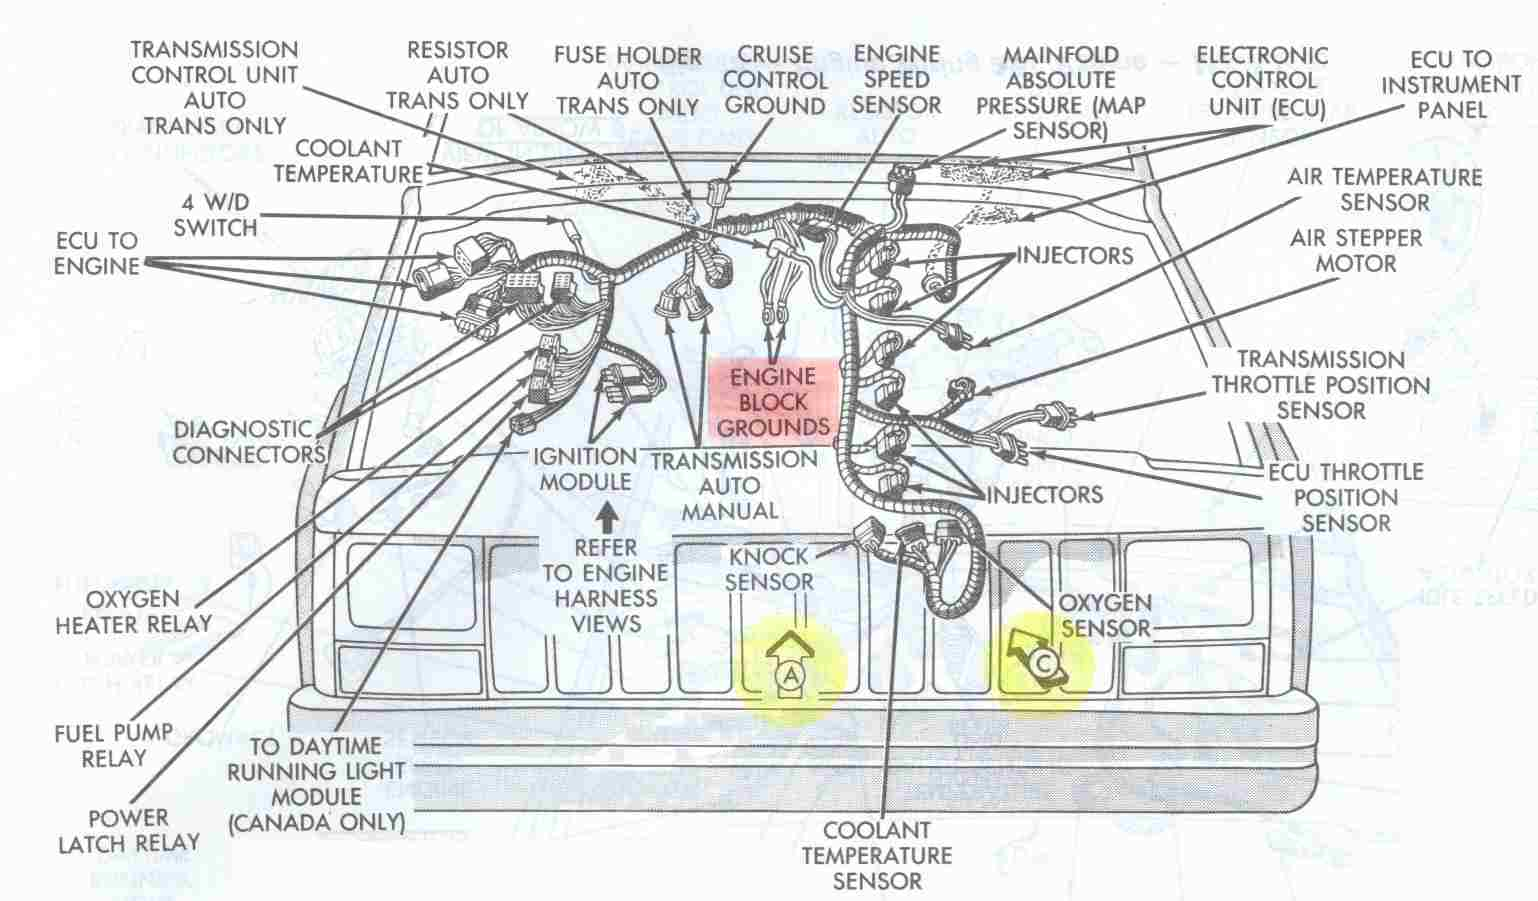 Electrical_Engine_Ground_Points_Overview jeep cherokee electrical diagnosing erratic behavior of engine 1996 jeep cherokee wiring diagram at honlapkeszites.co